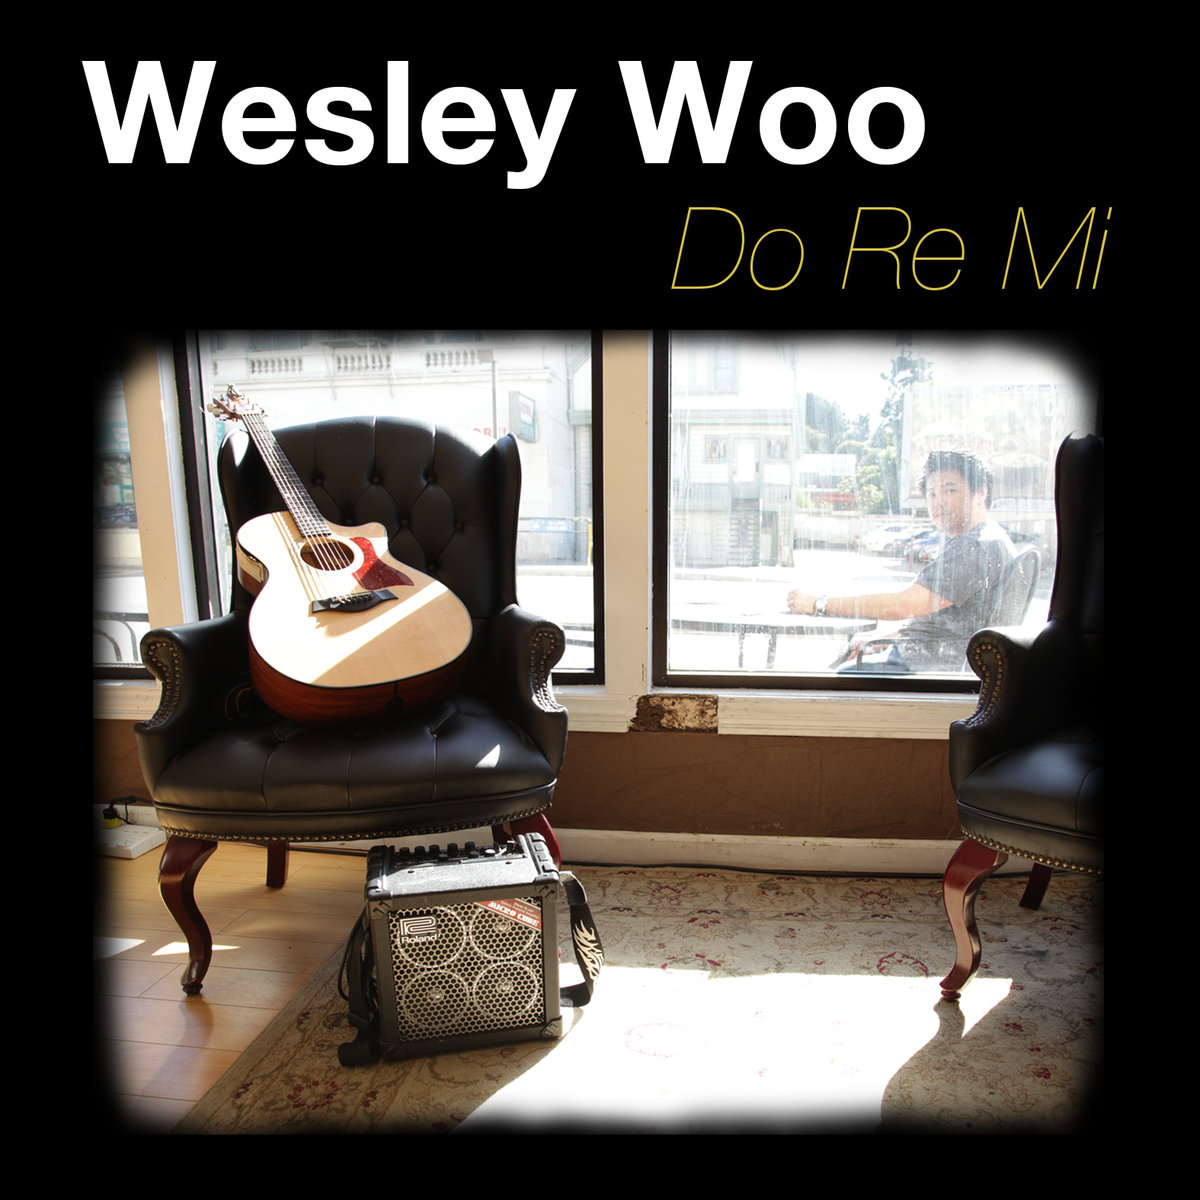 Wesley Woo - Do Re Mi